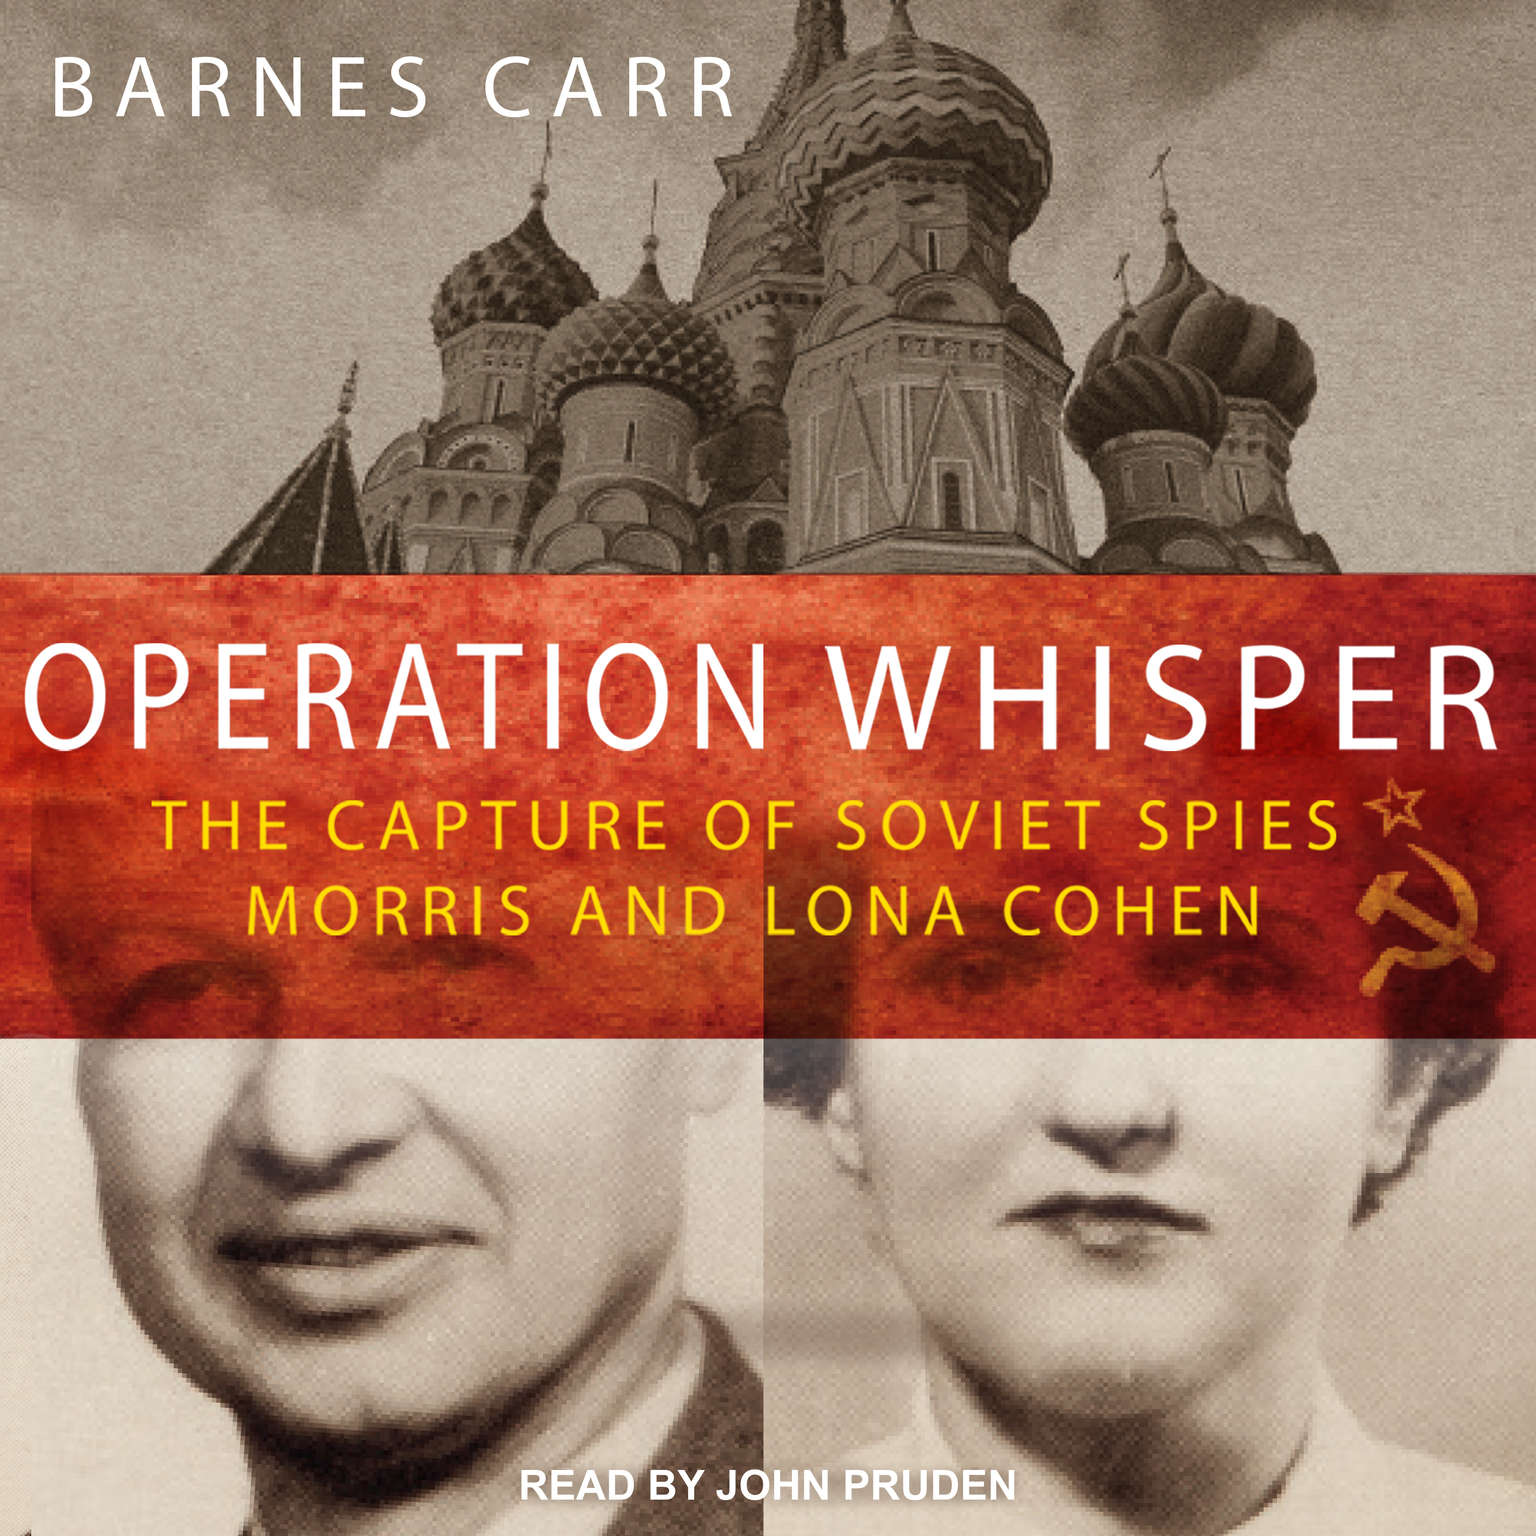 Operation Whisper: The Capture of Soviet Spies Morris and Lona Cohen Audiobook, by Barnes Carr